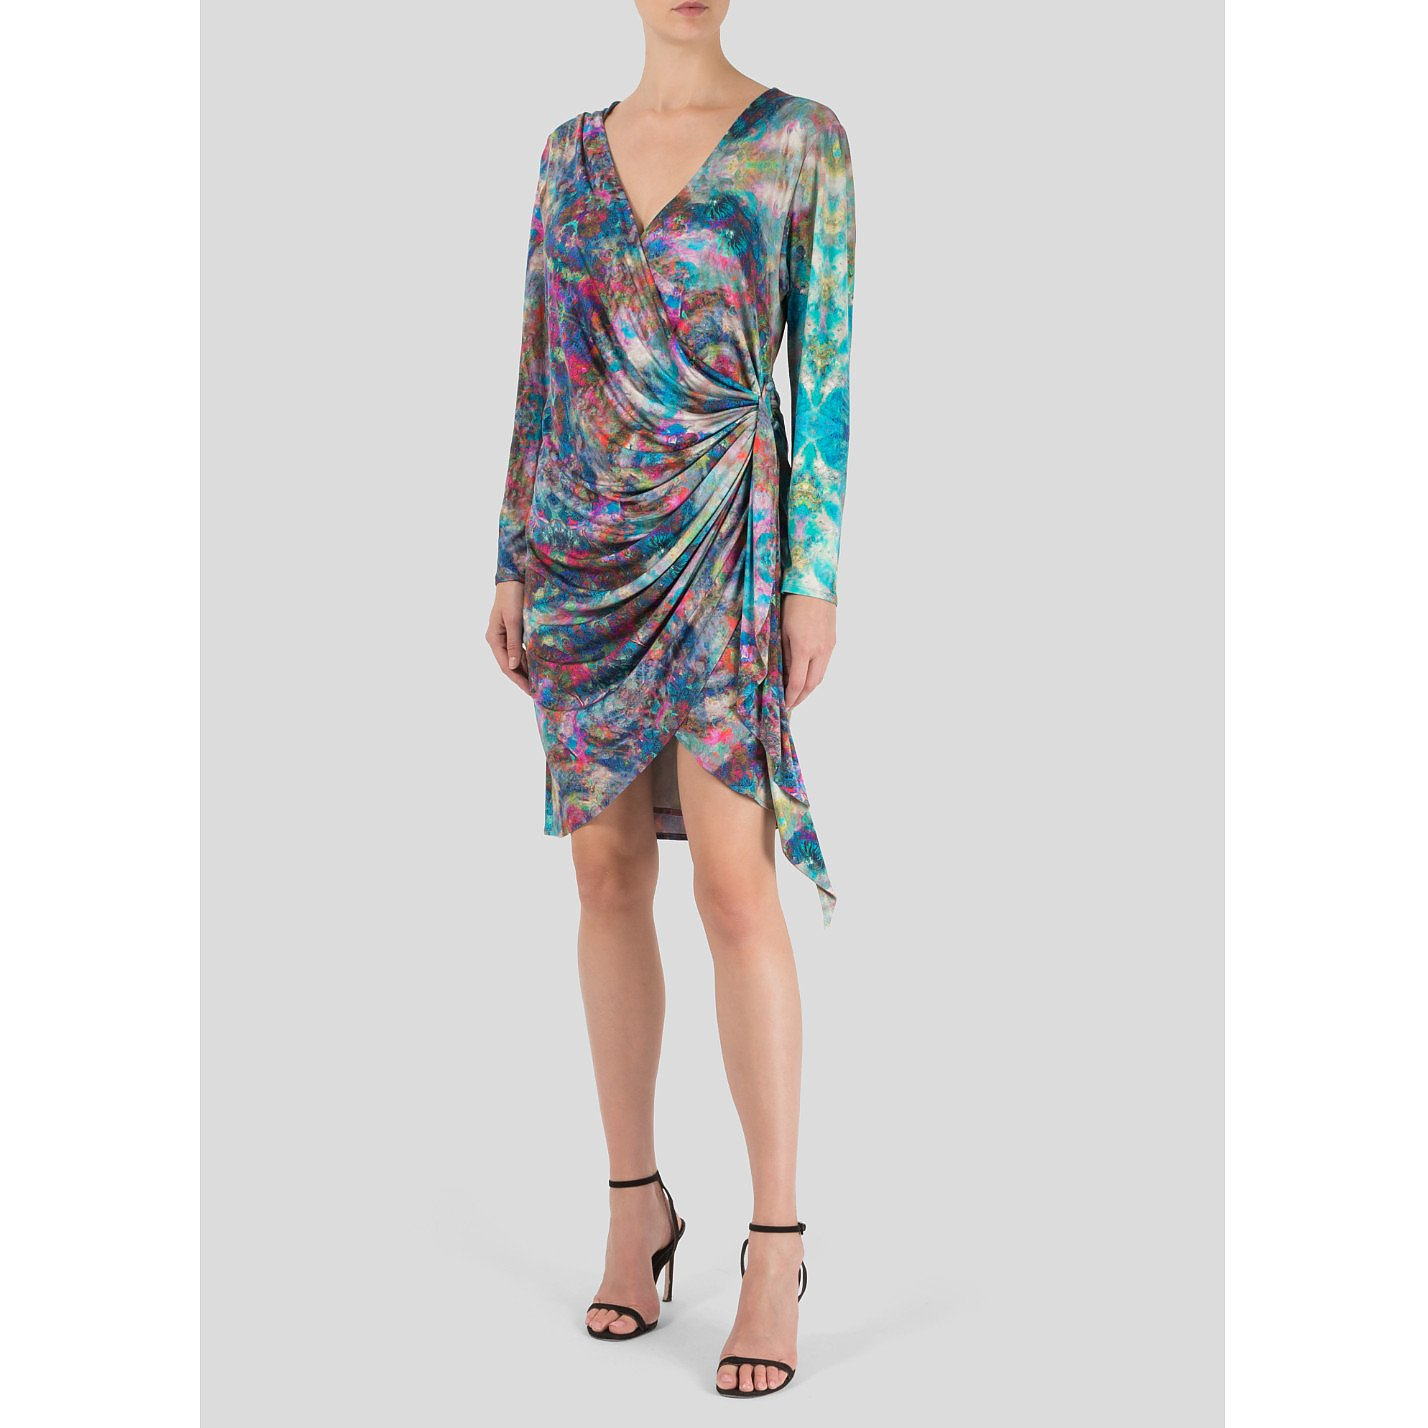 Tramp In Disguise Florence Dress